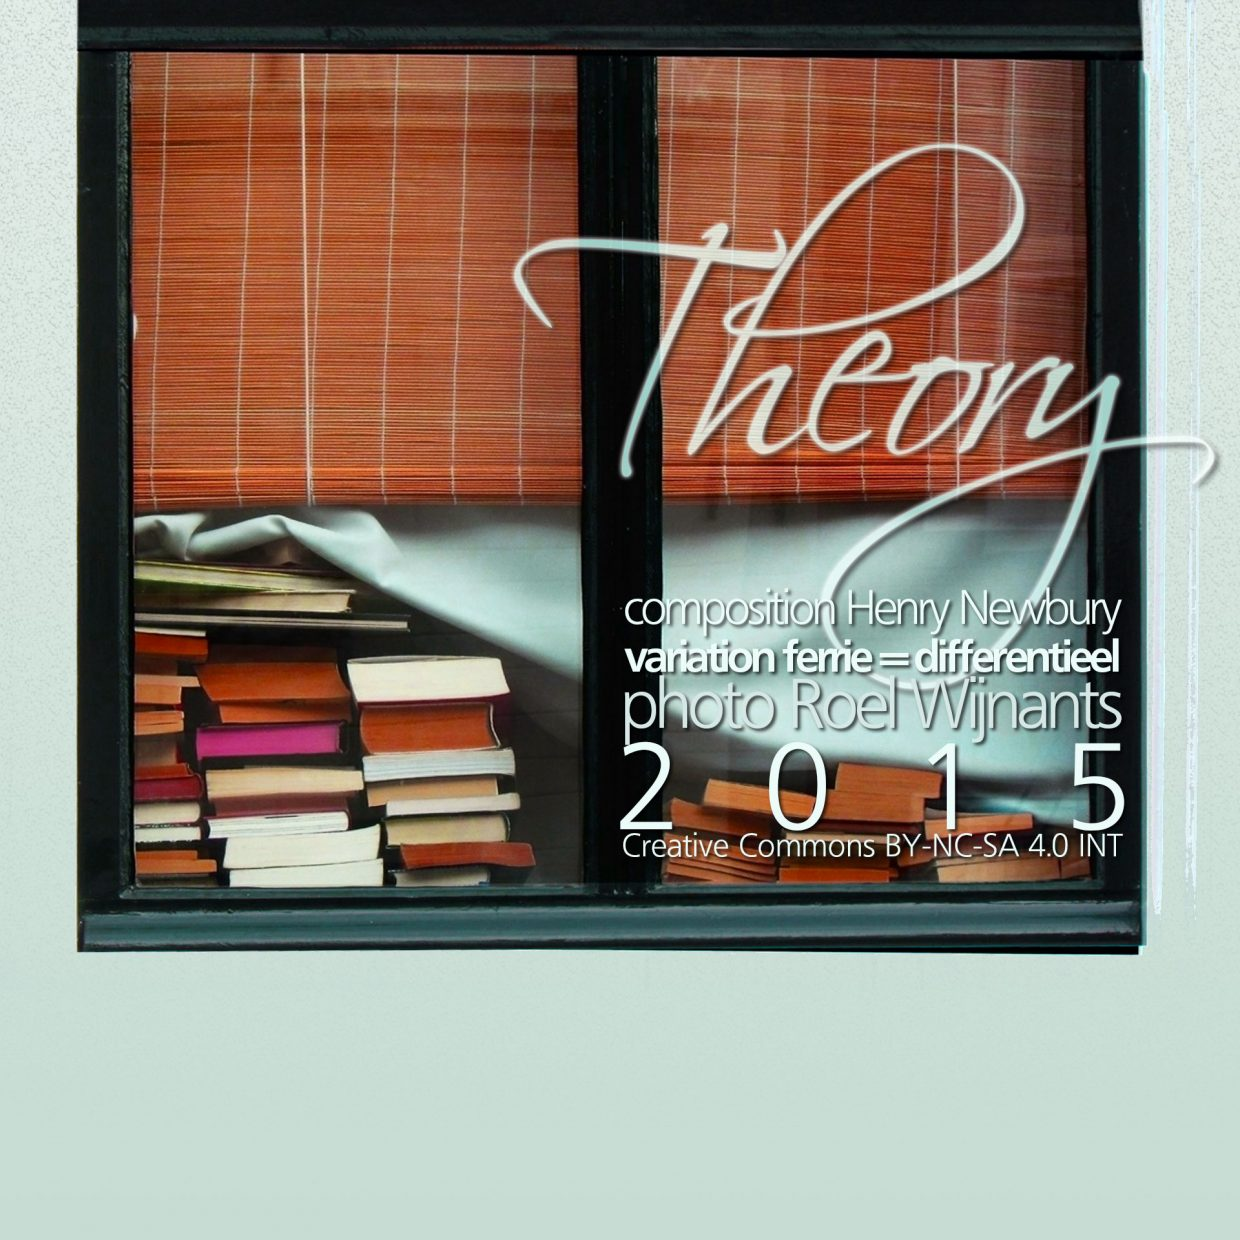 Theory cover